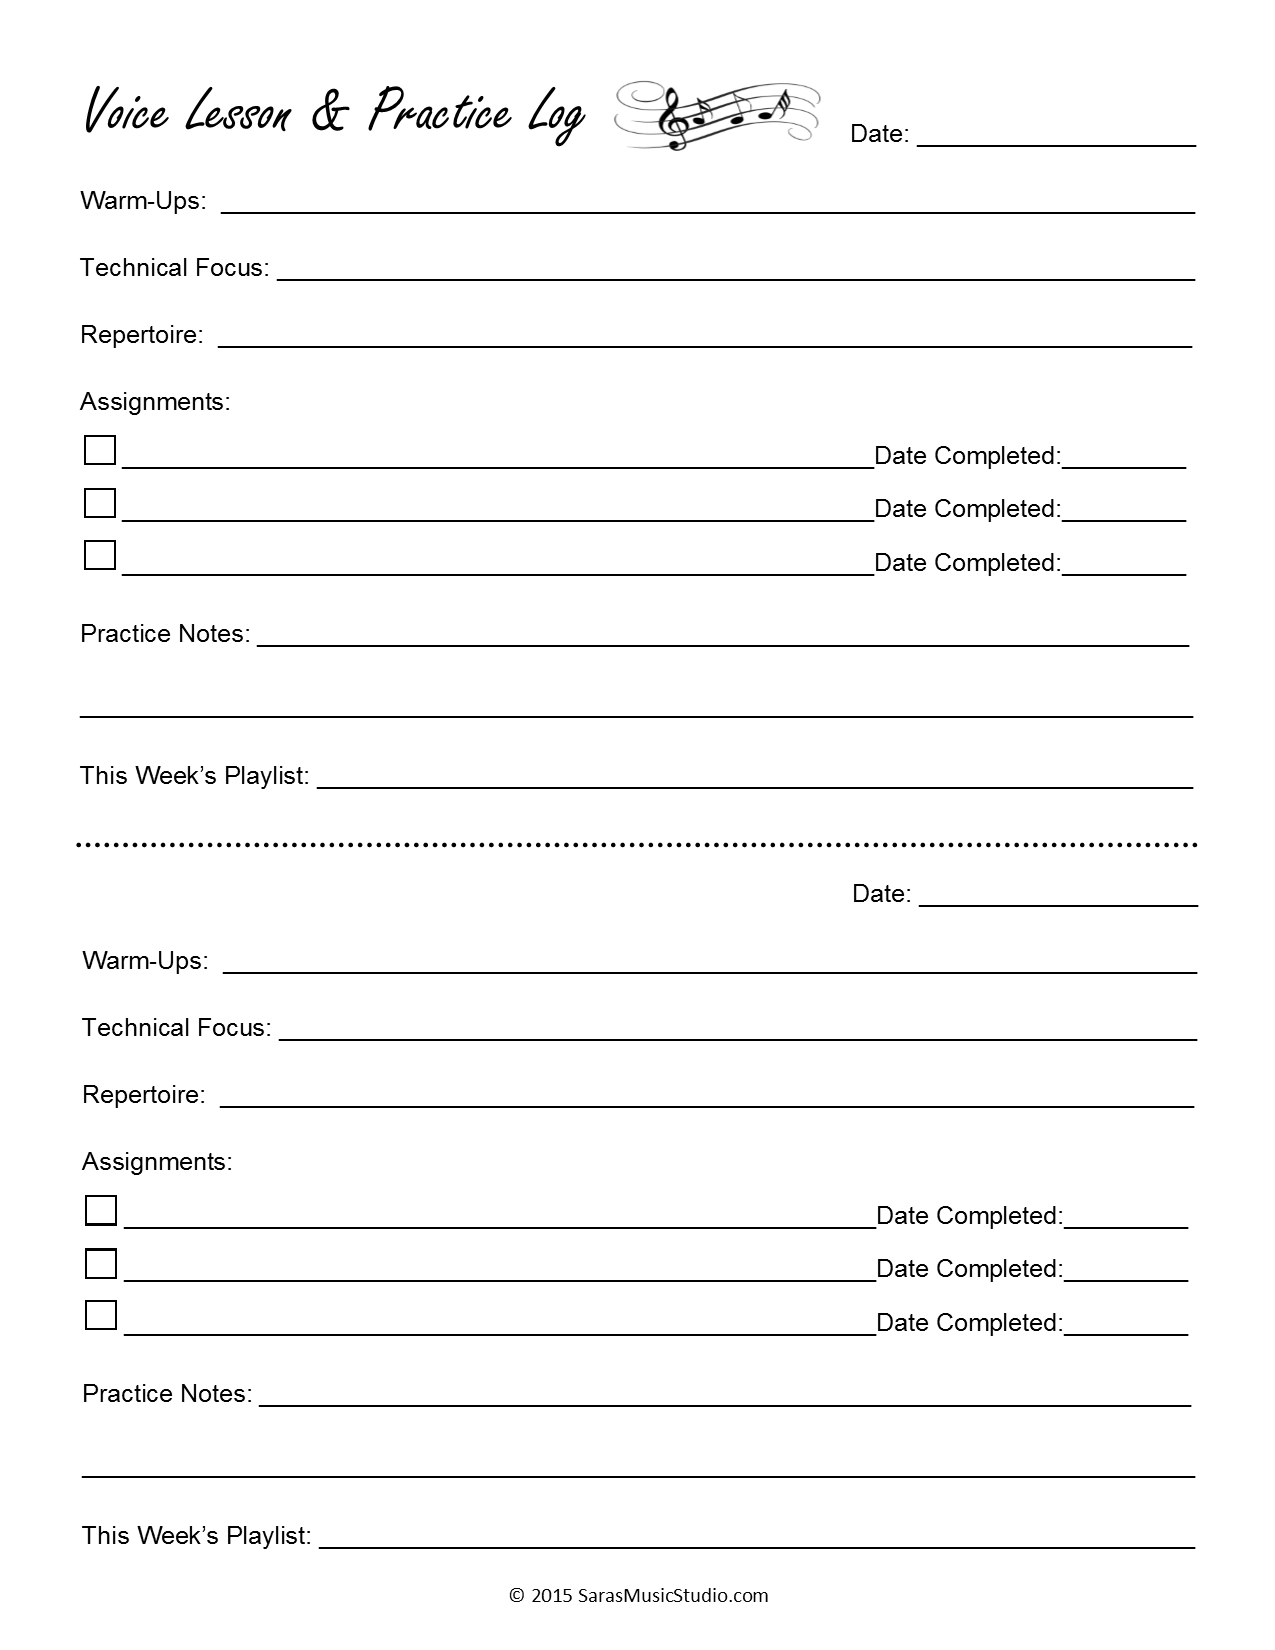 Voice Lesson Assignment Sheets